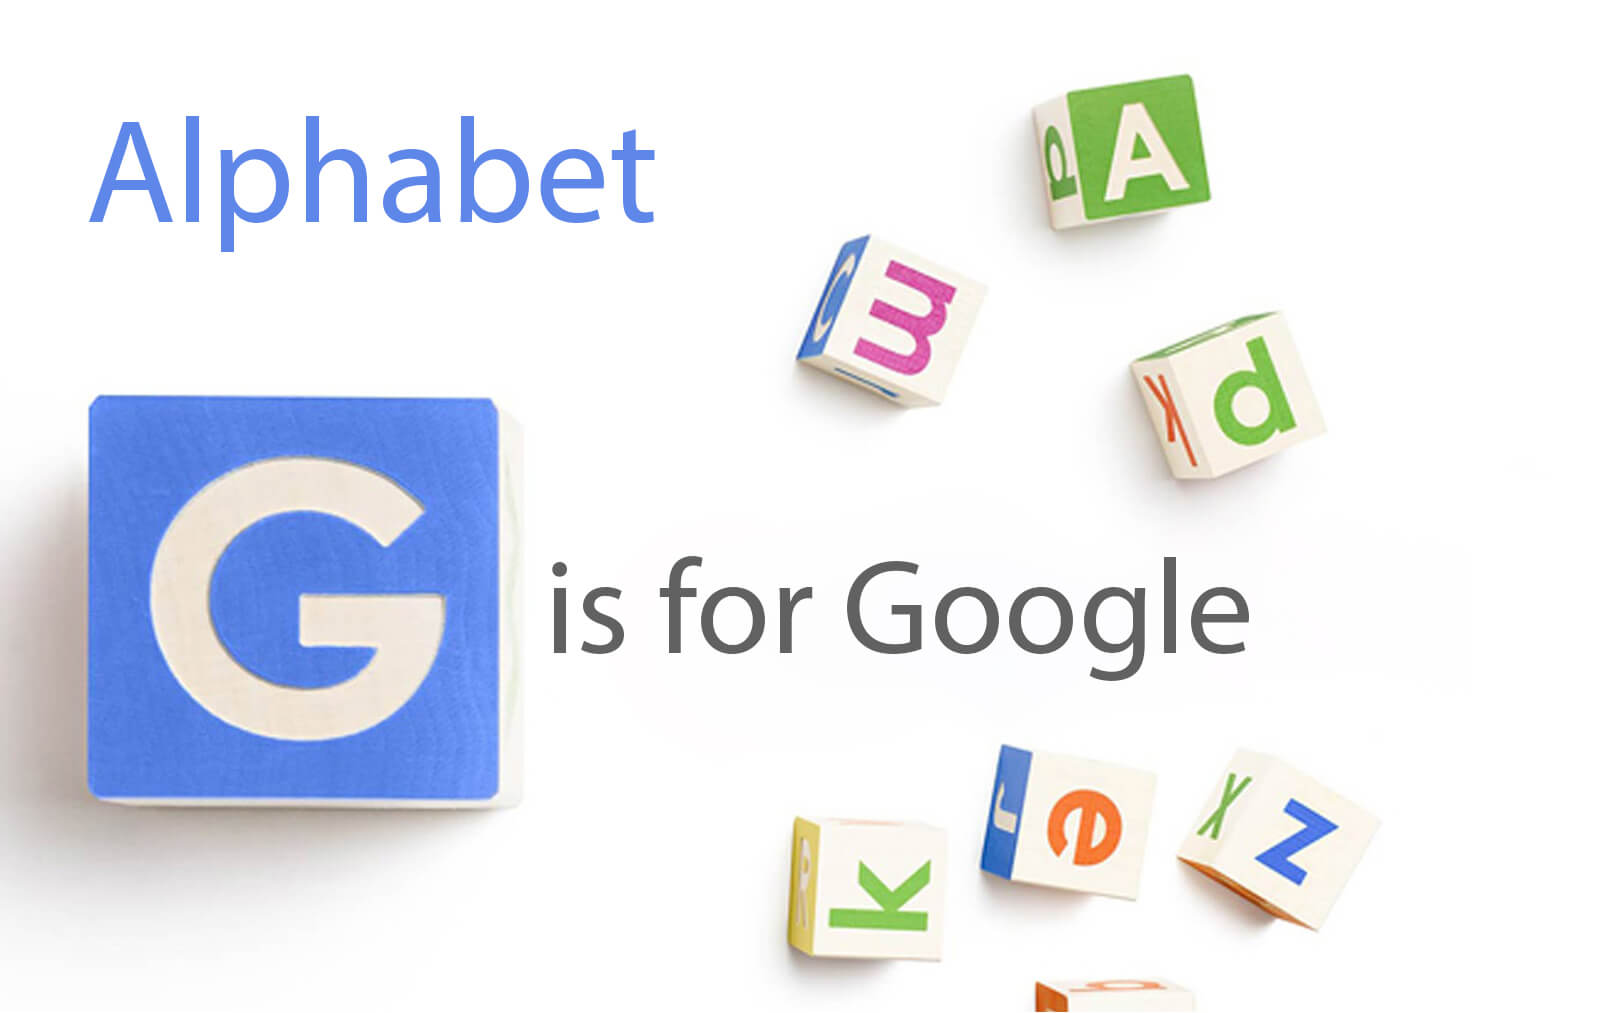 g-is-for-google